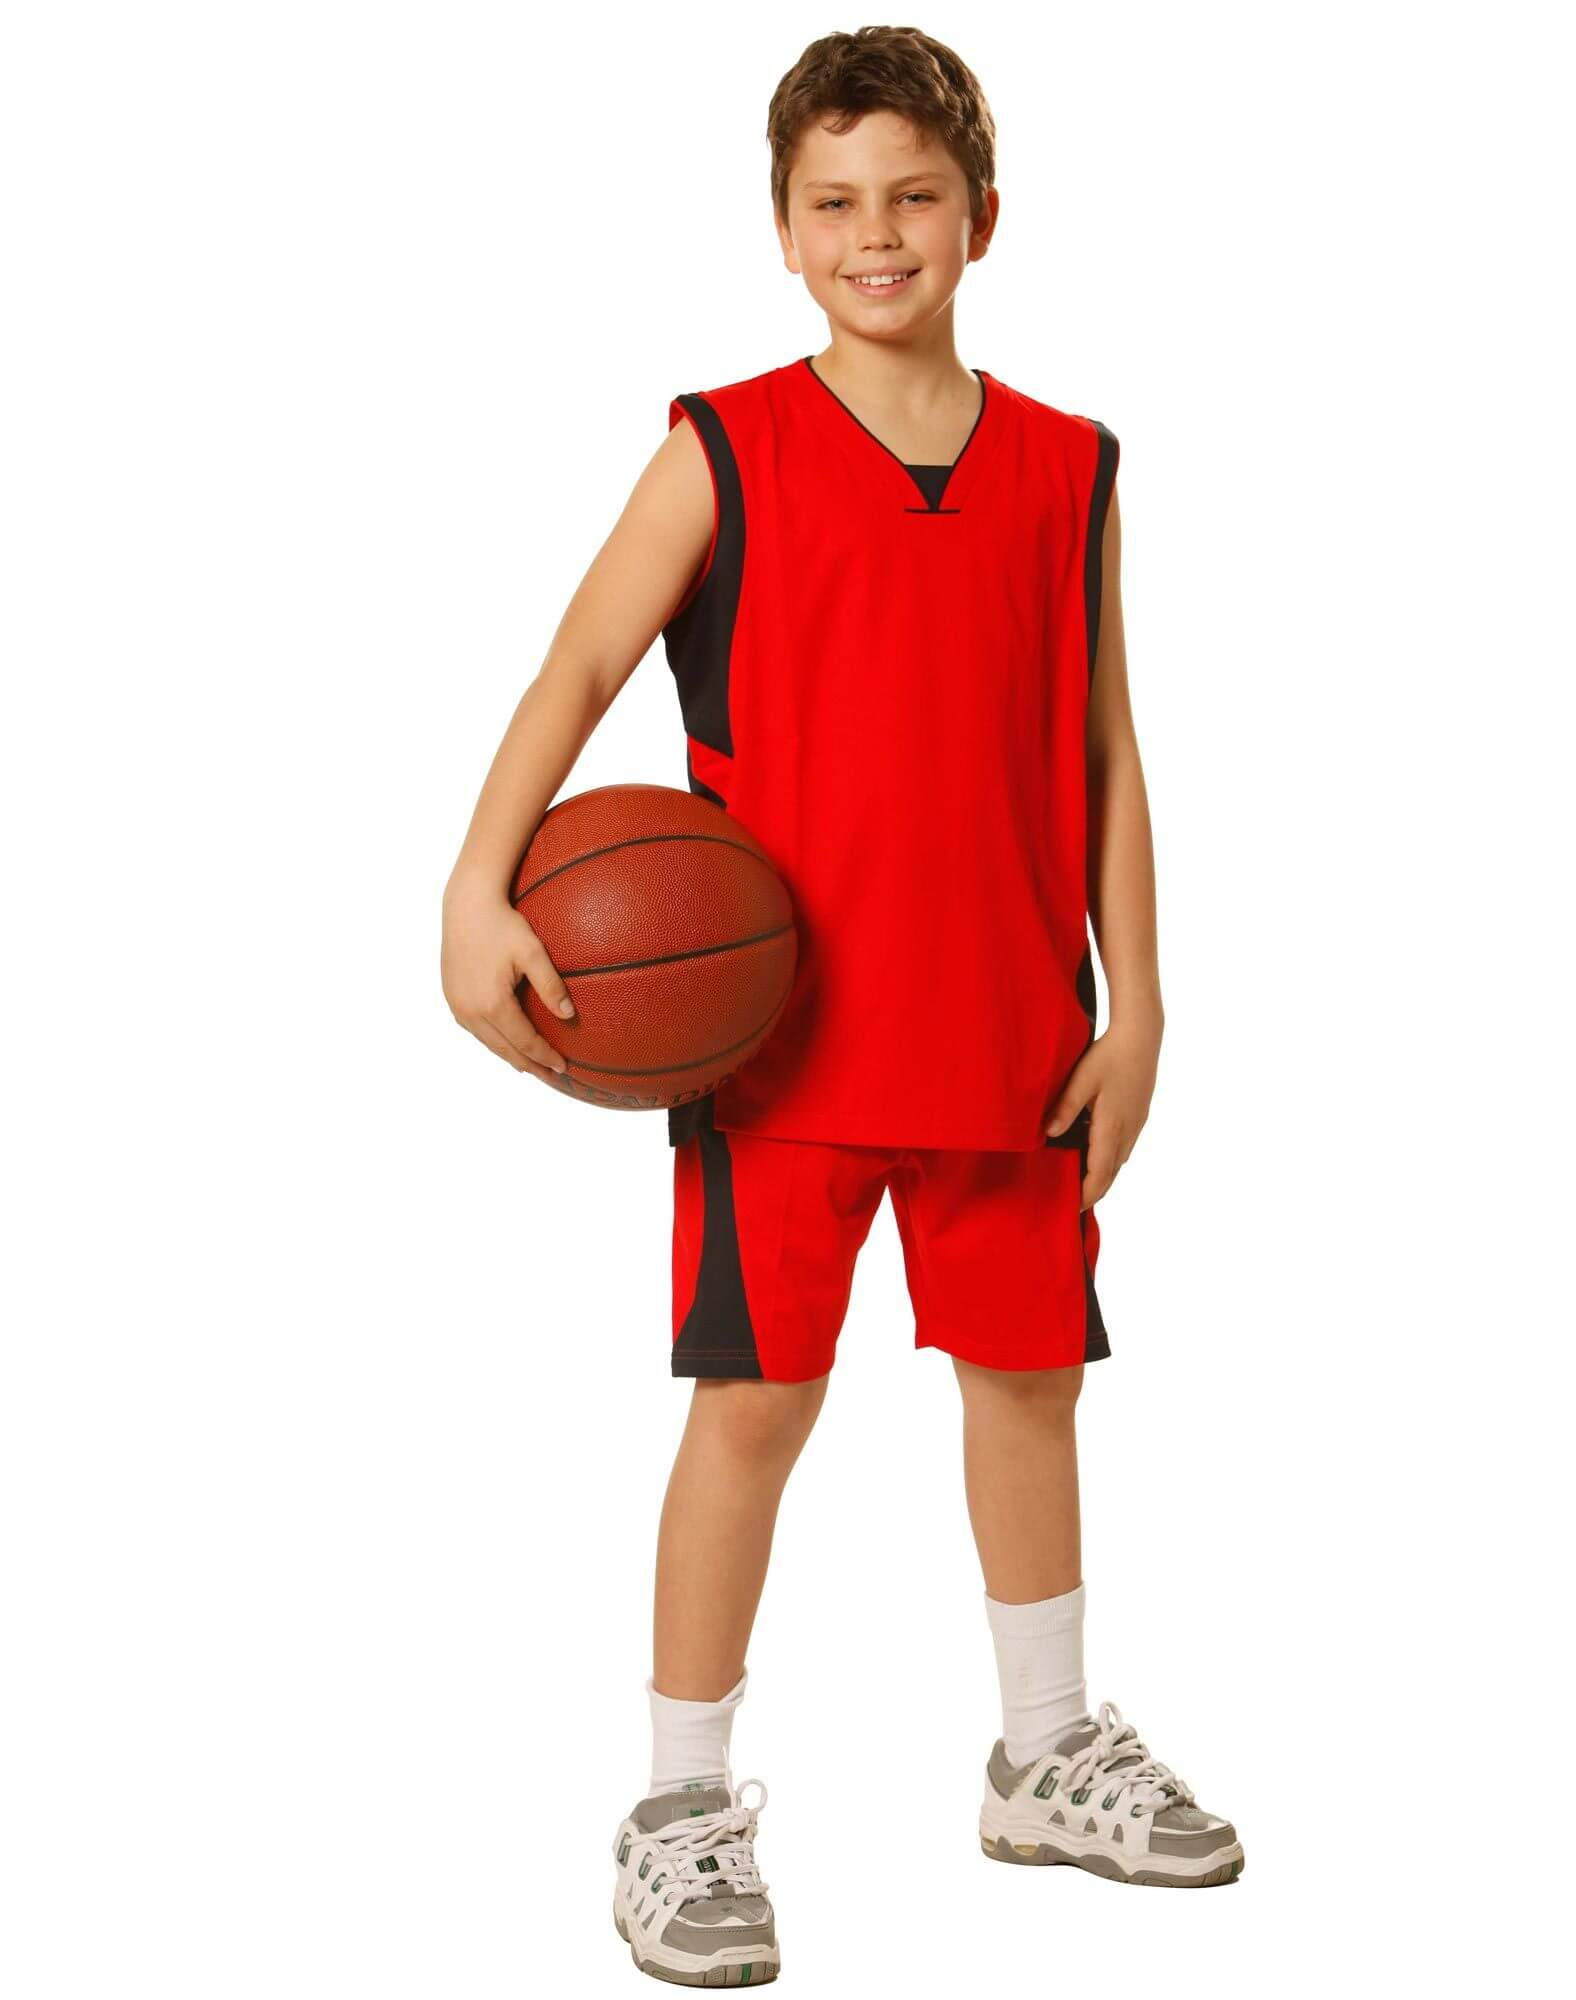 Kids Basketball Jerseys Manufacturers in Srinagar